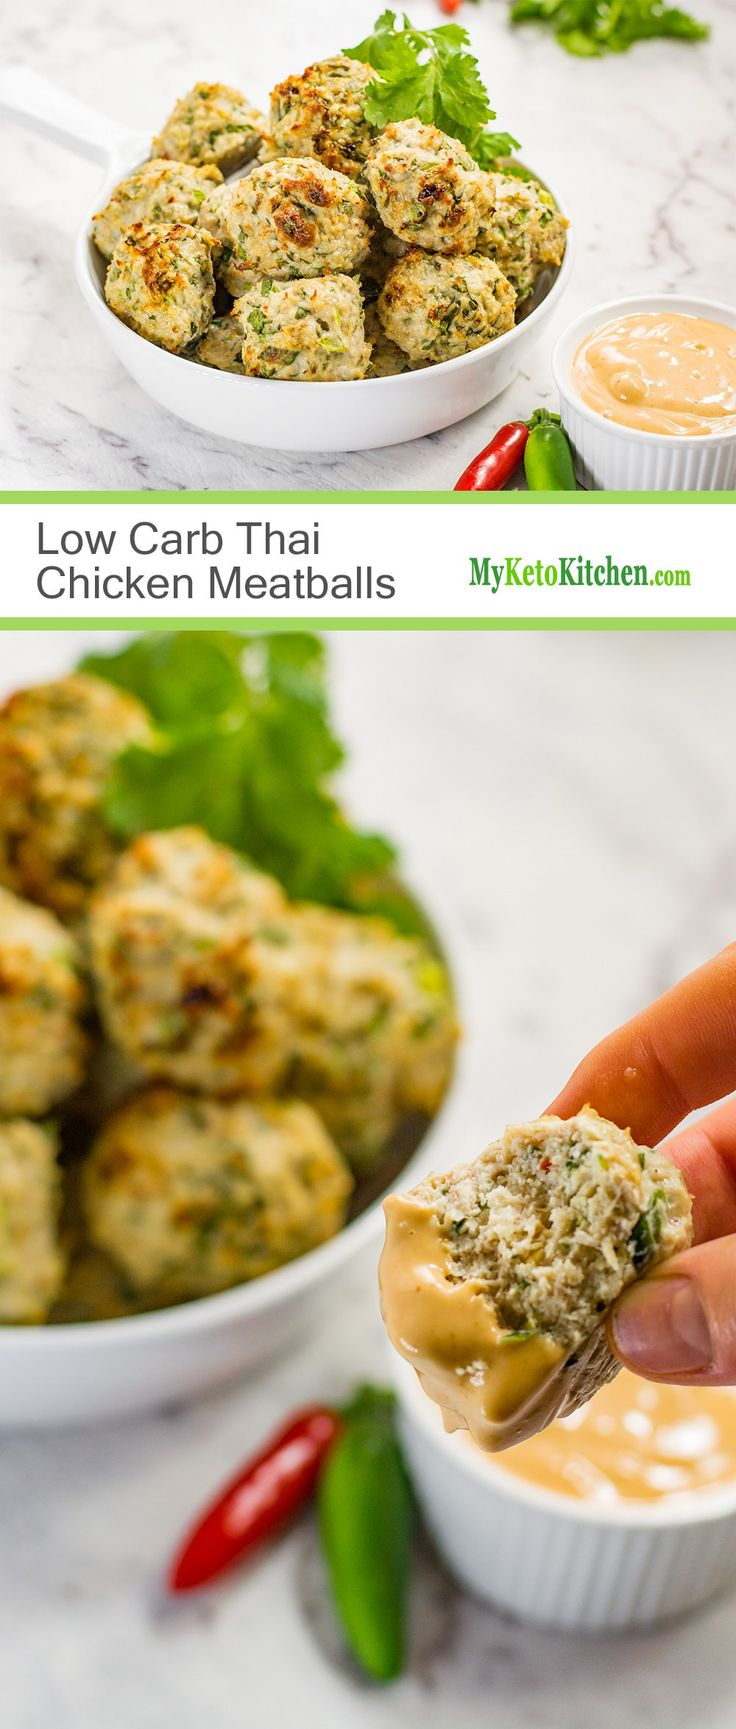 Low Carb Thai Chicken Meatballs with Dipping Sauce (Gluten Free, Keto, Paleo)